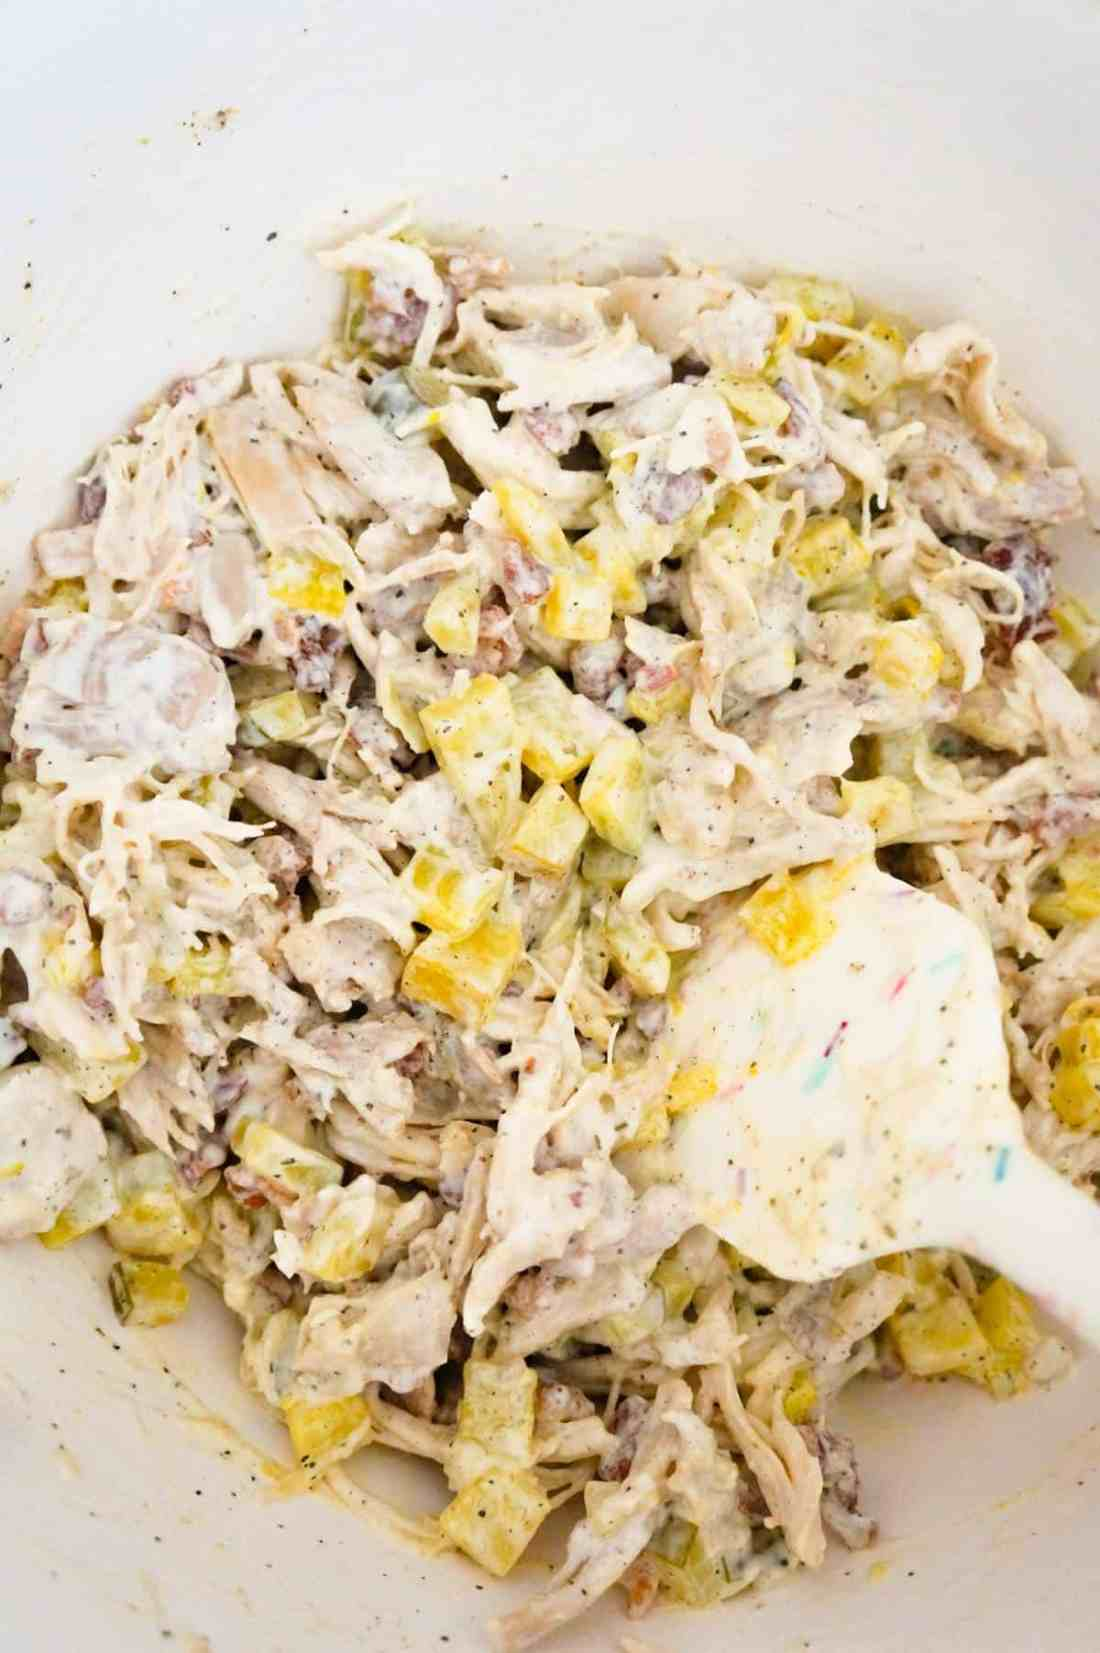 dill pickle chicken mixture in a mixing bowl